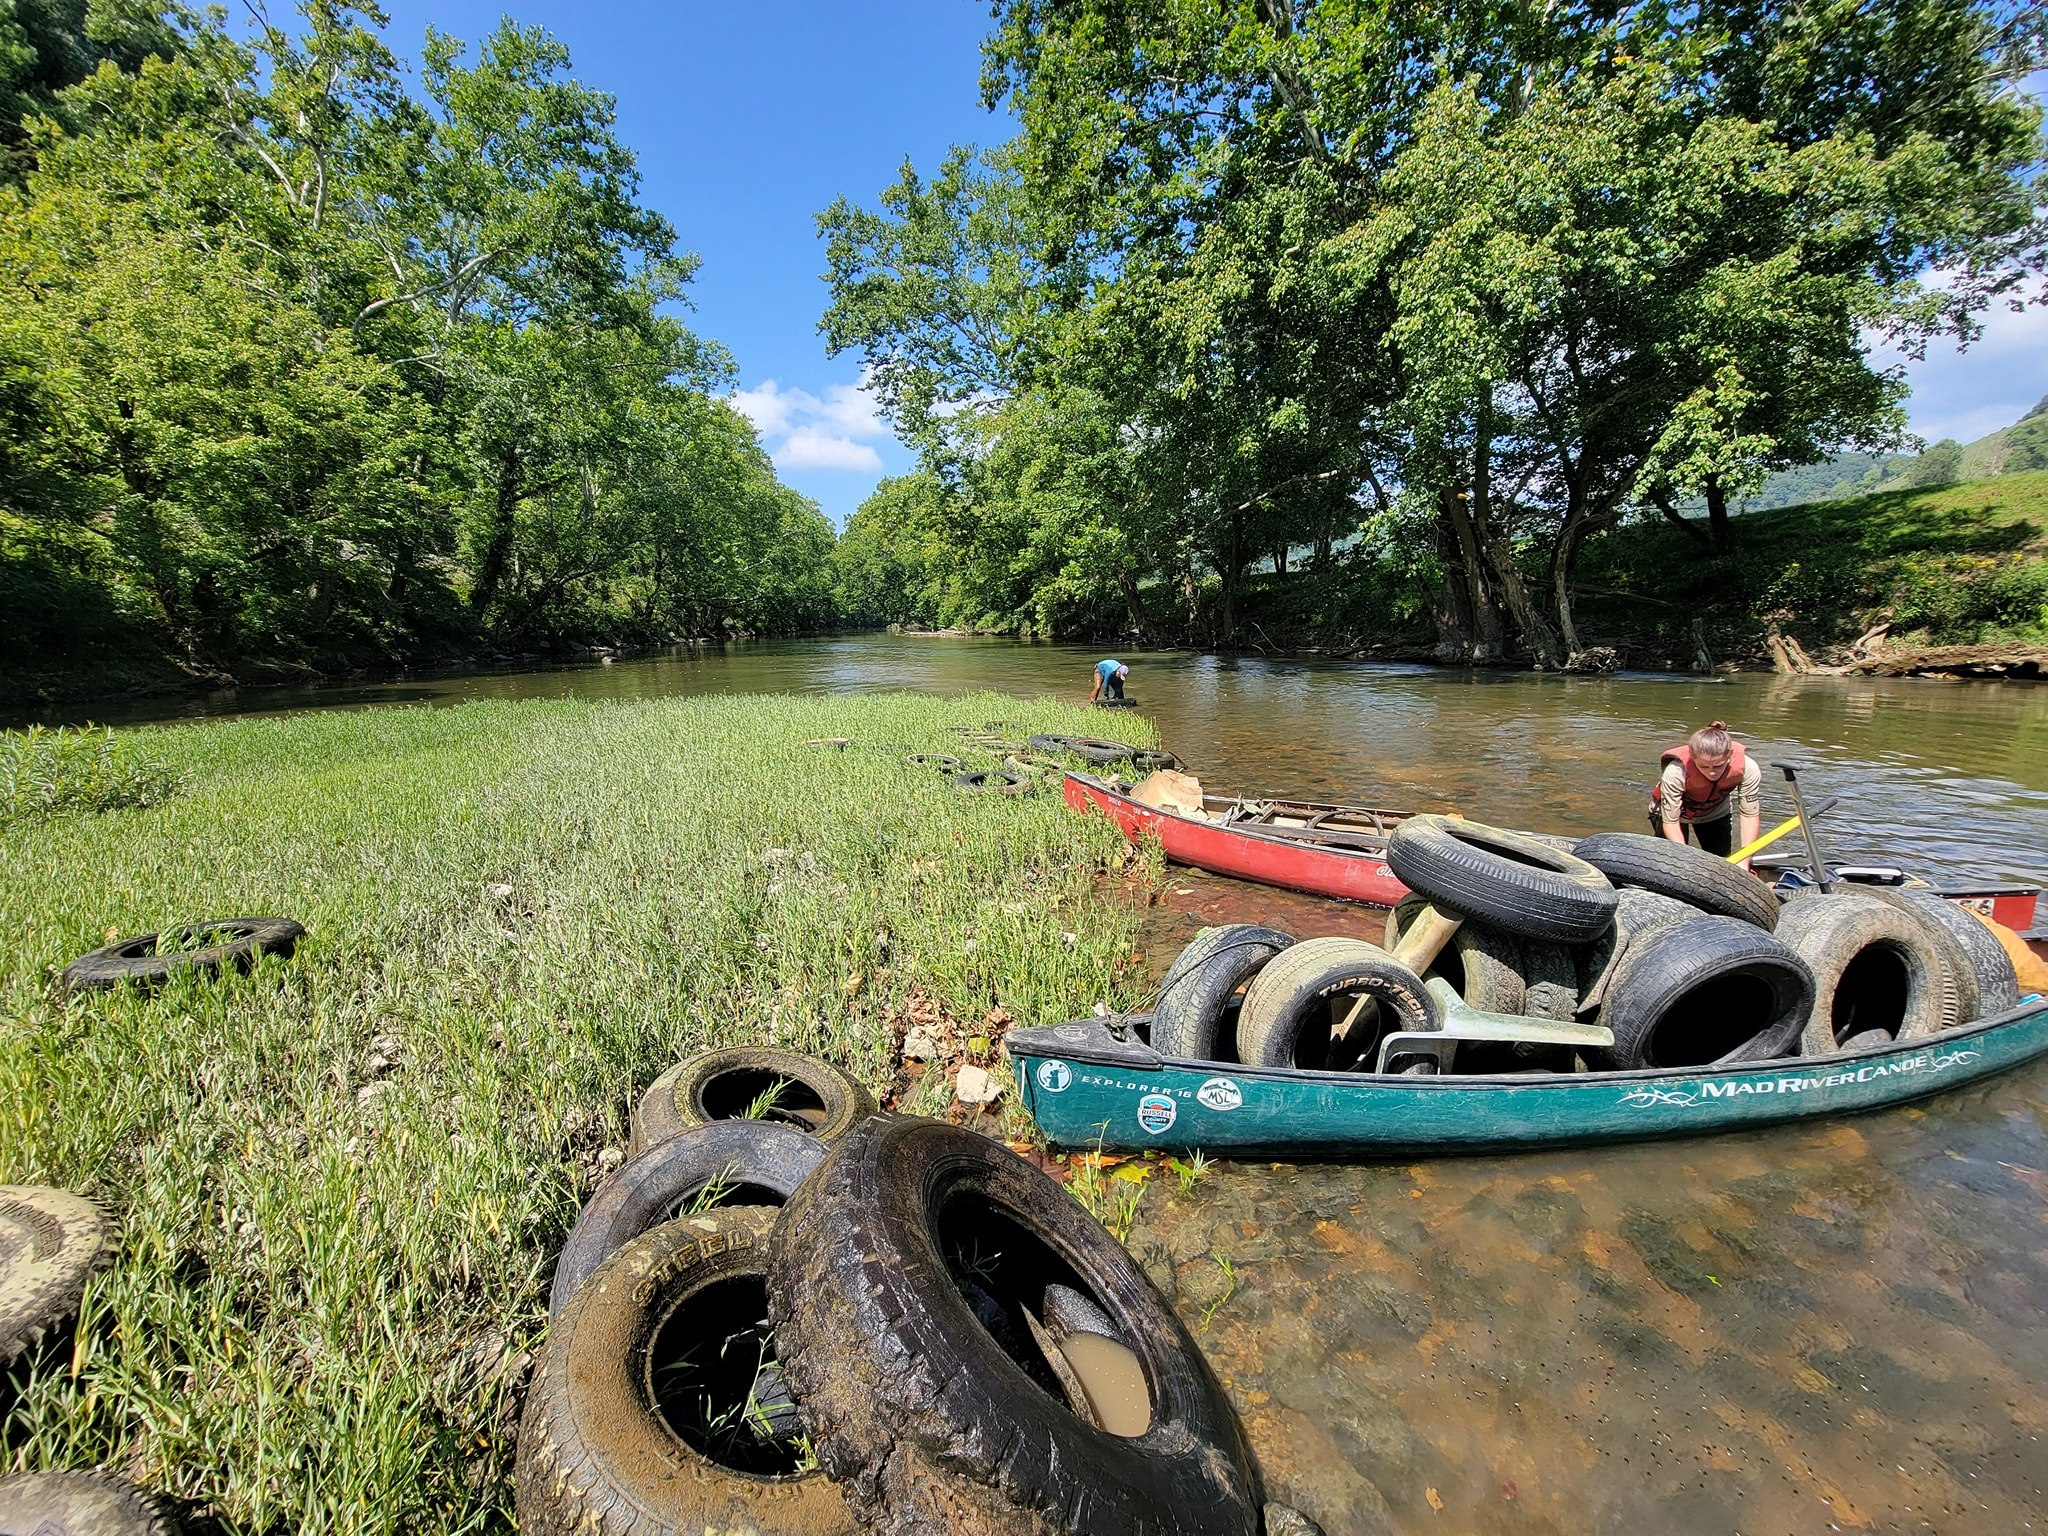 several tires lay on a low-lying gravel bar in the river and people with canoes full of tires stop to pick them up